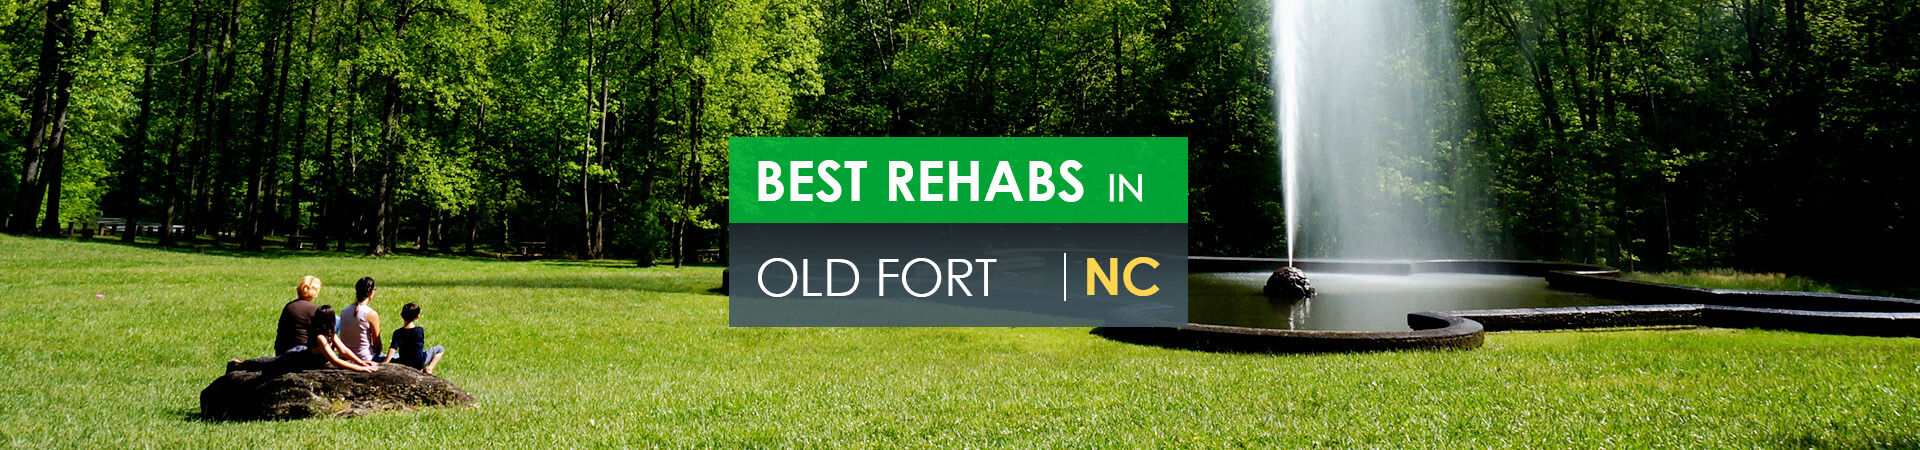 Best rehabs in Old Fort, NC